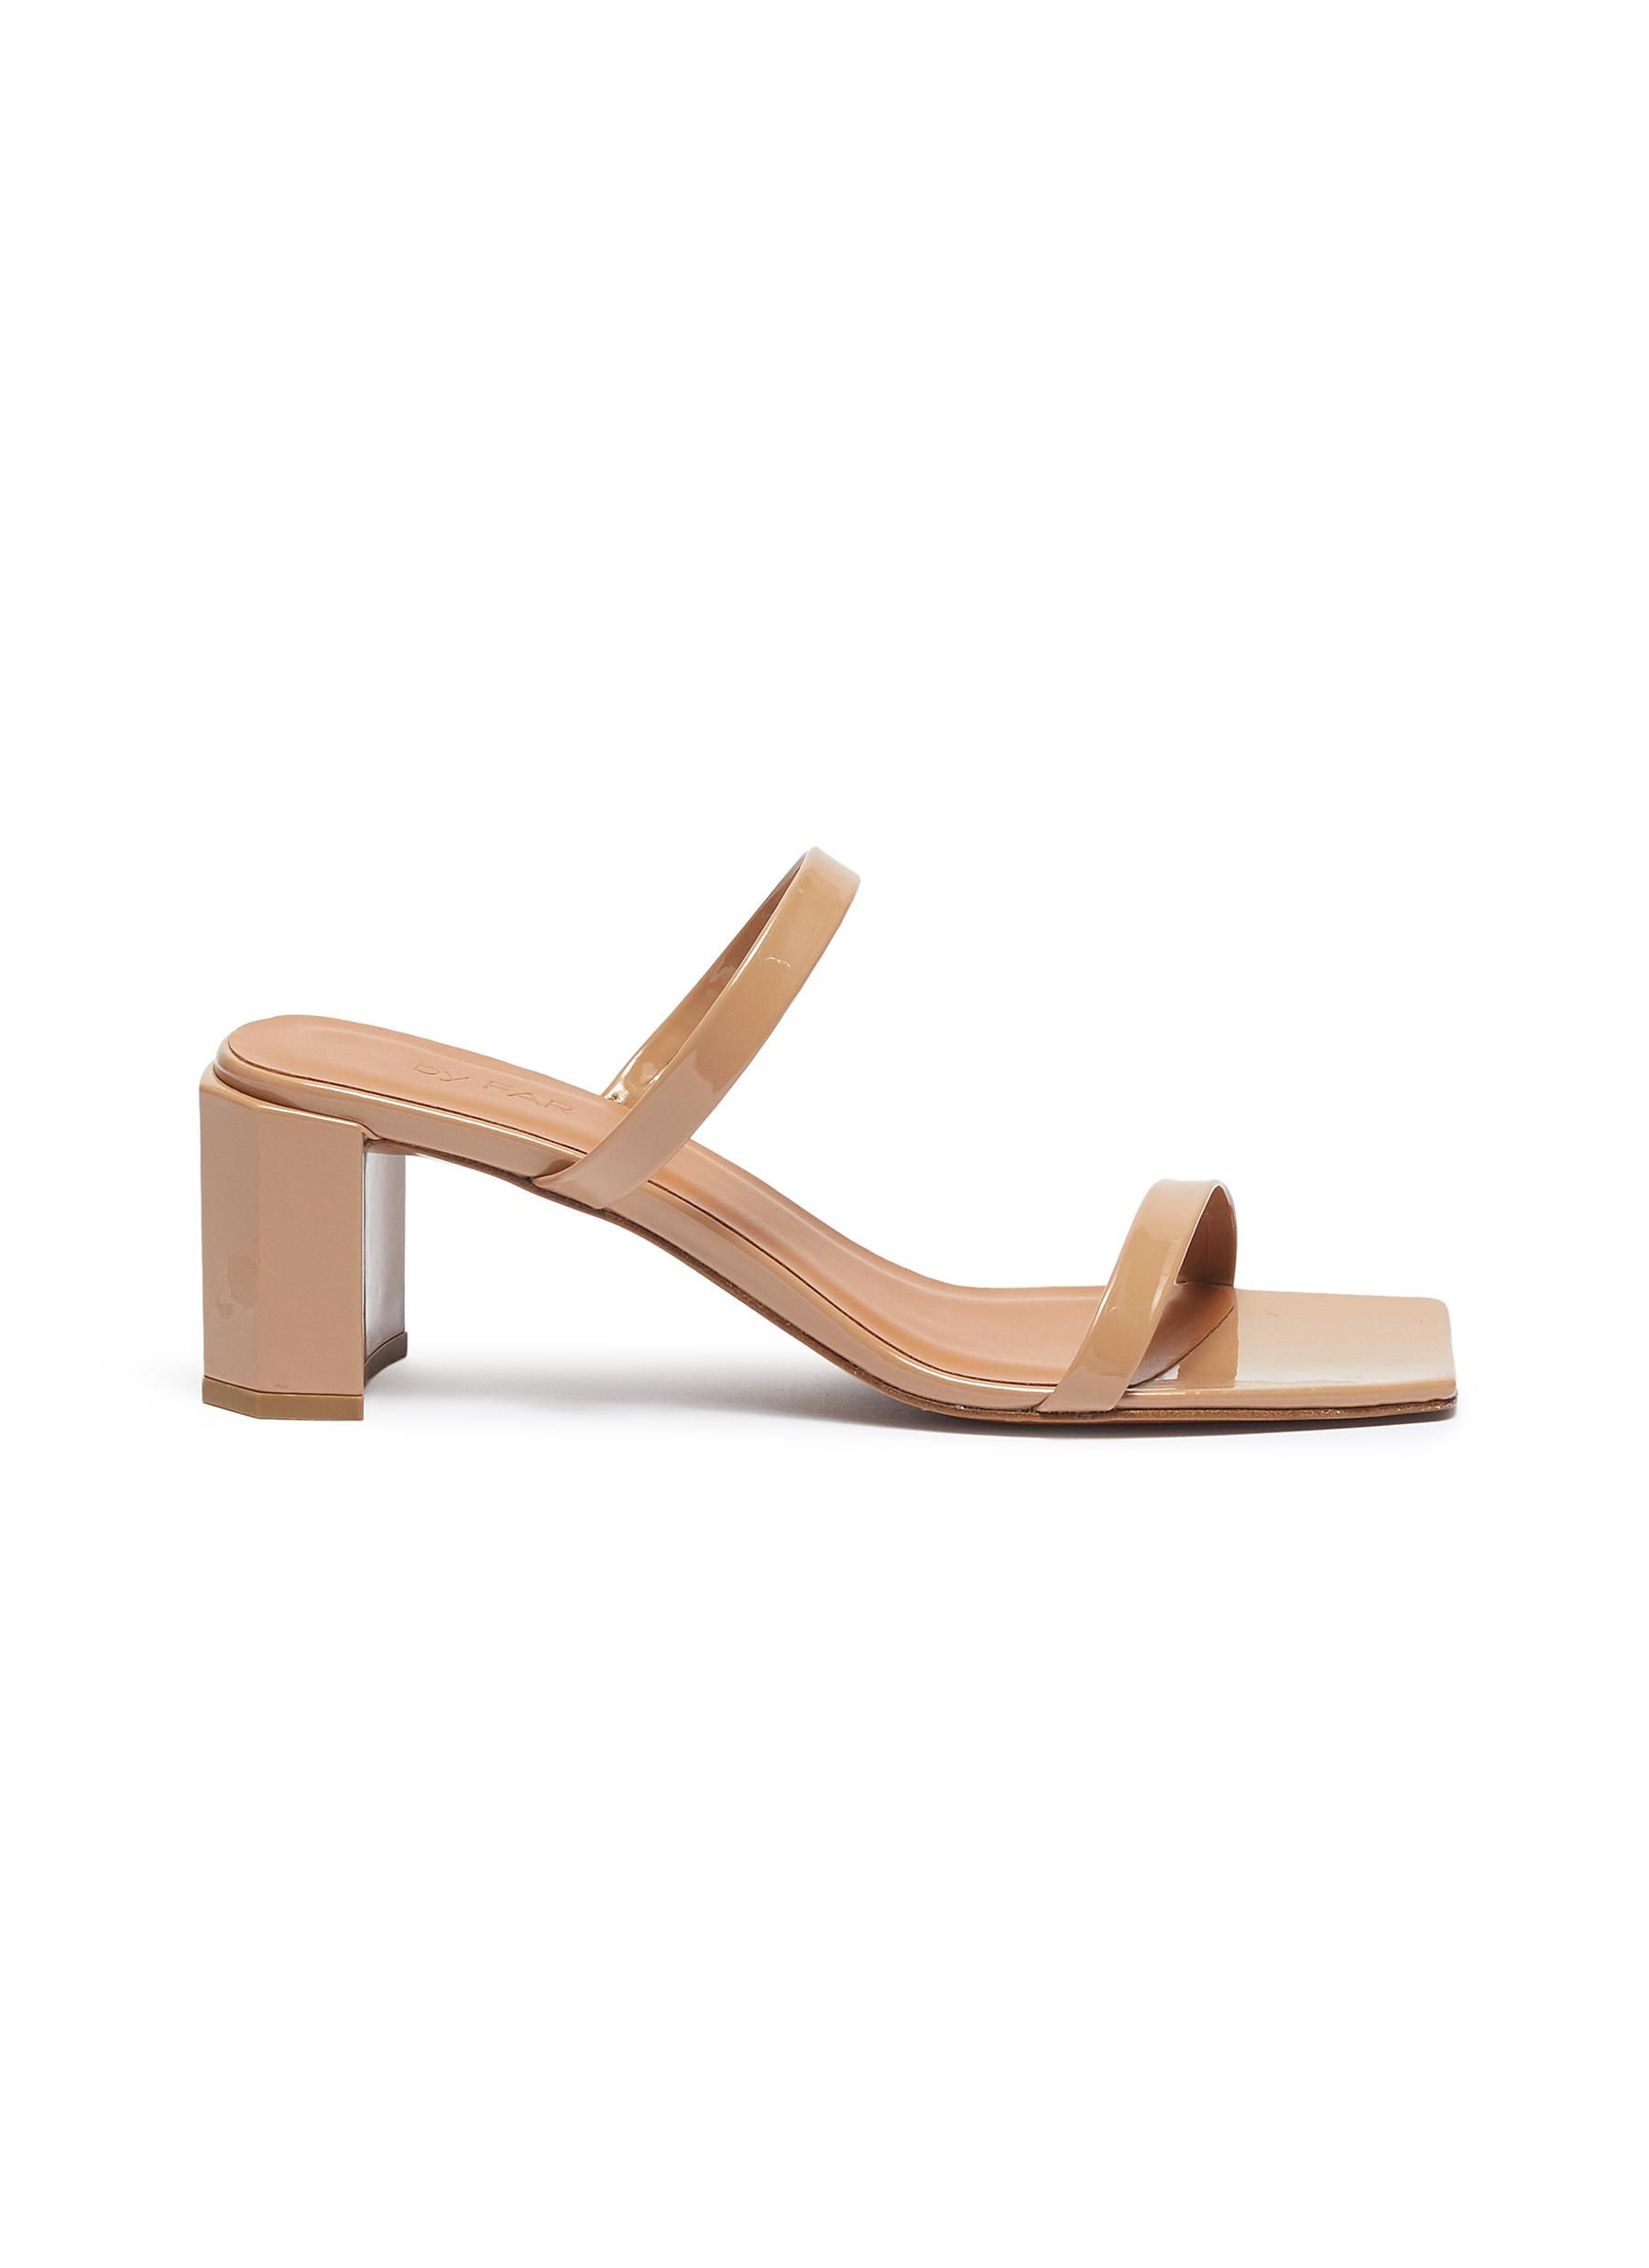 Tanya patent leather sandals by By Far